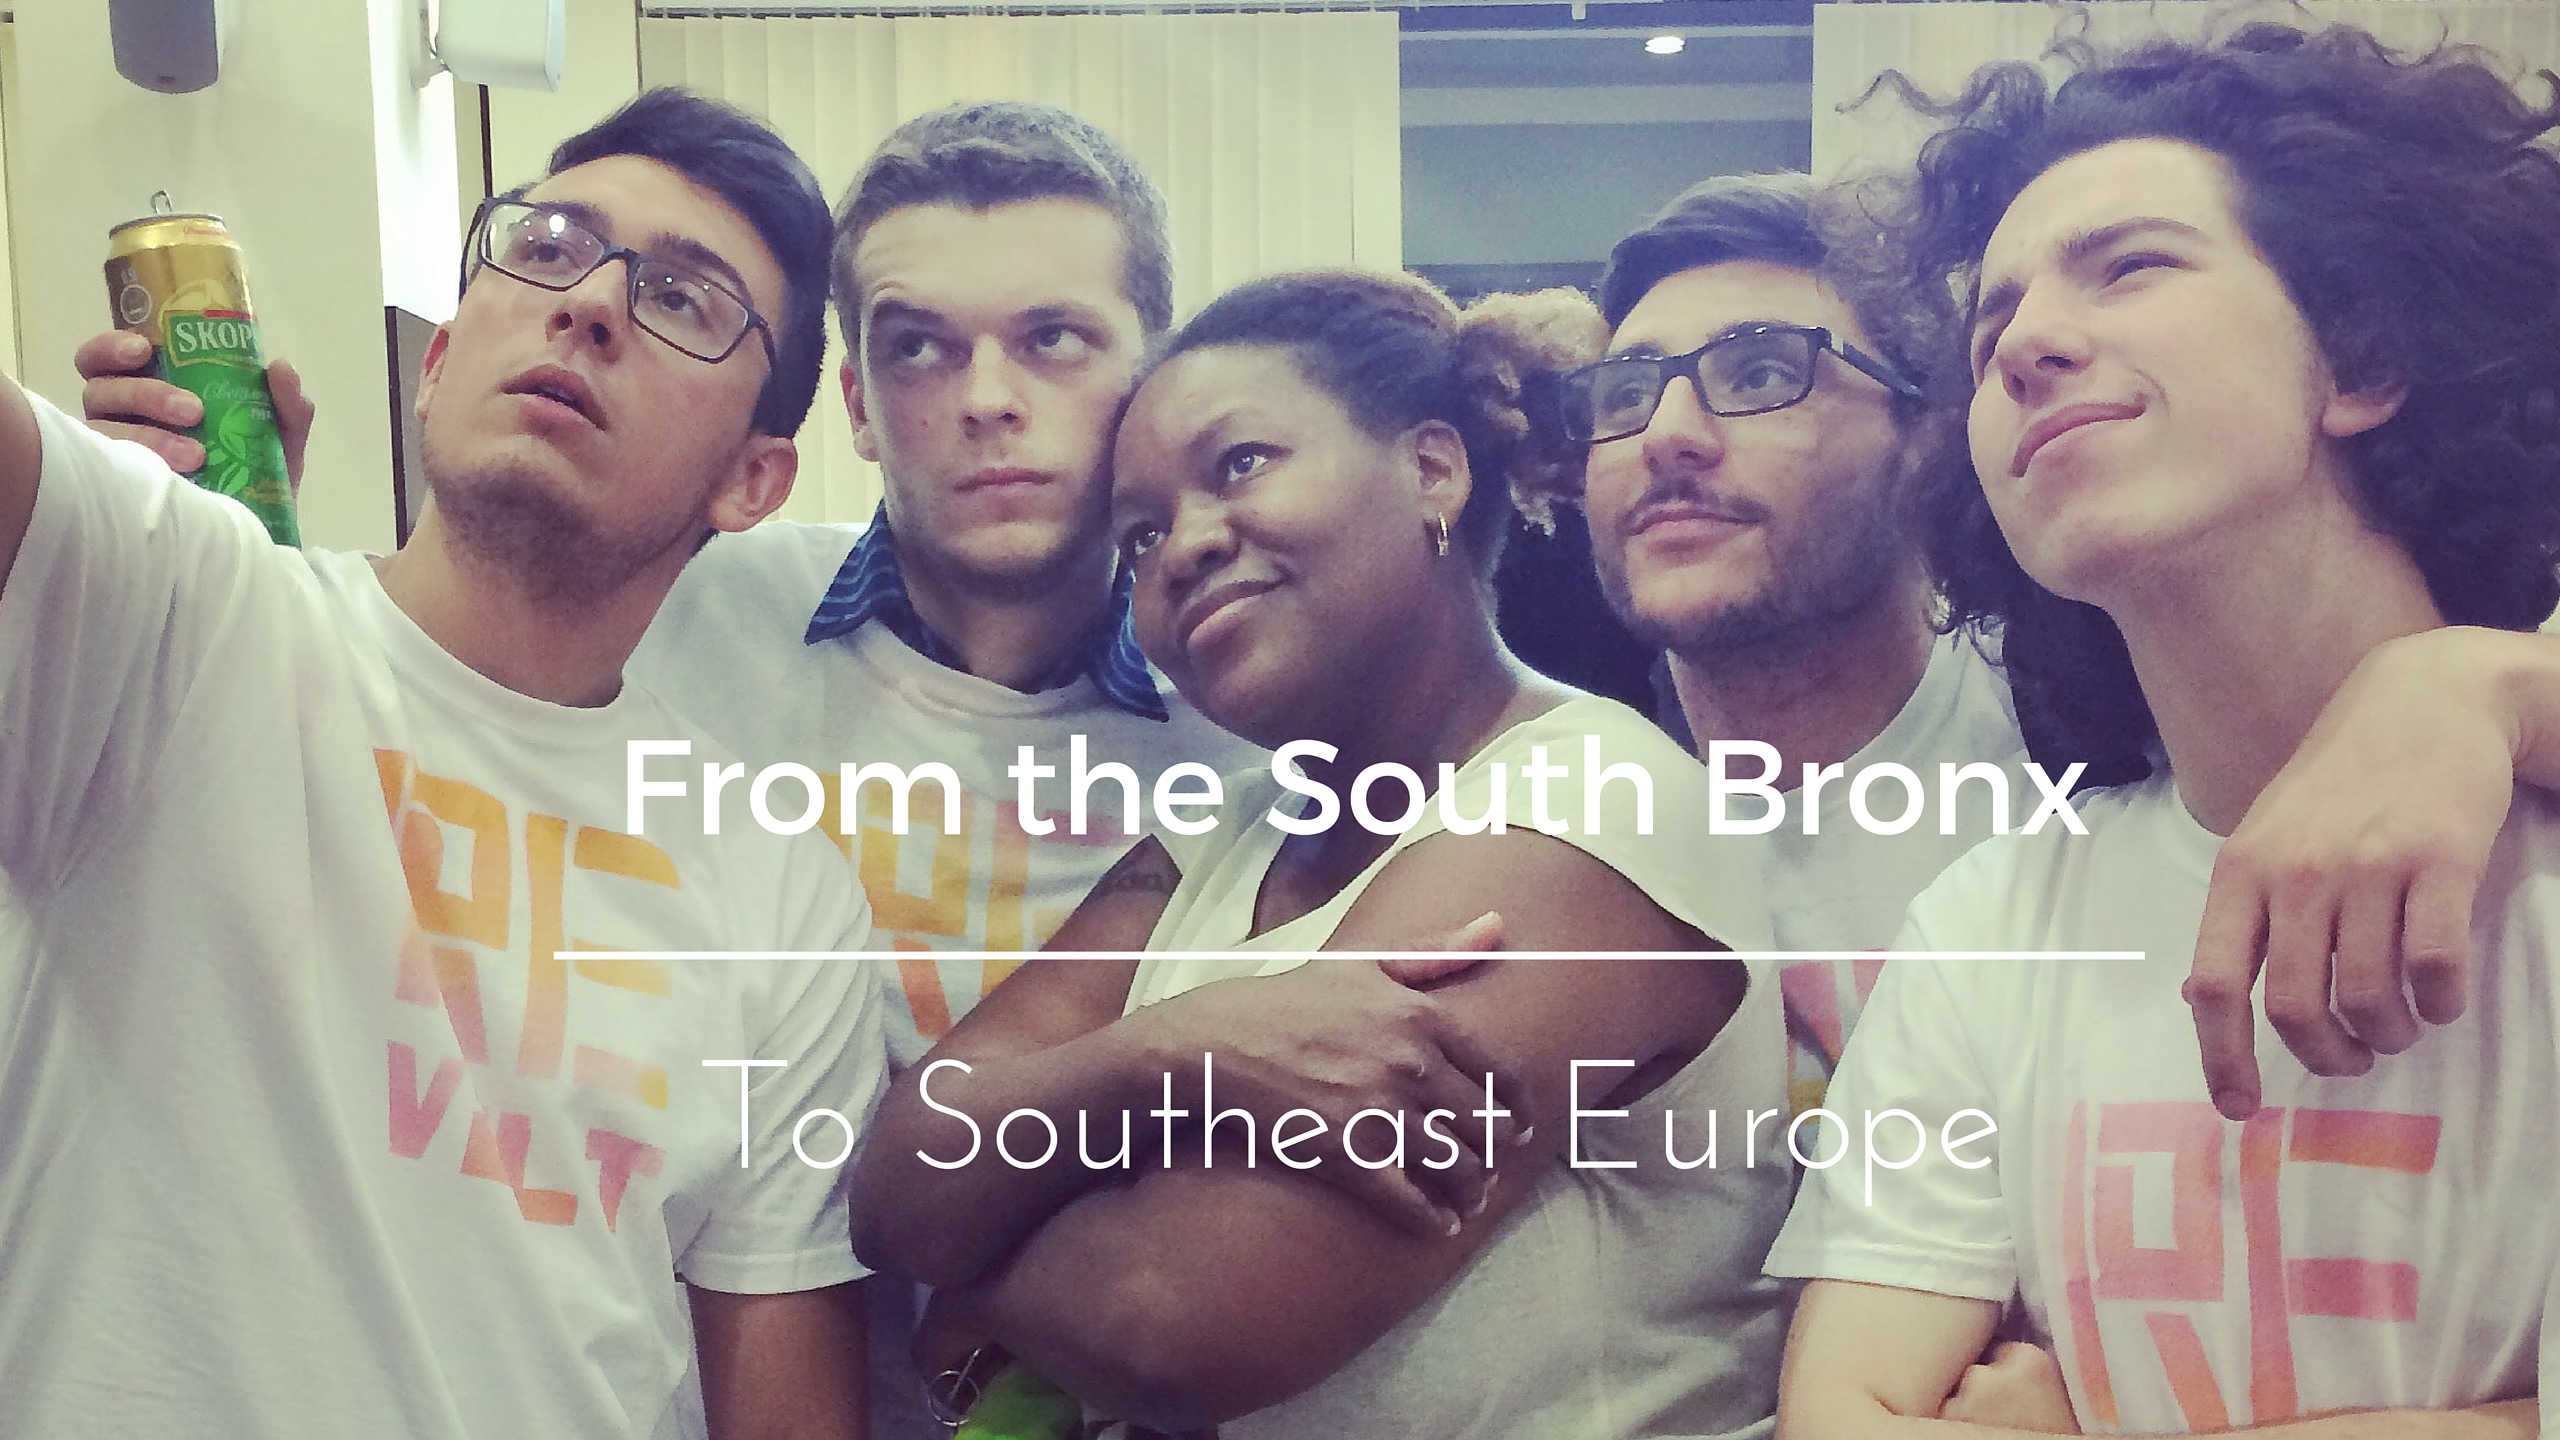 From the South Bronx to Southeast Europe